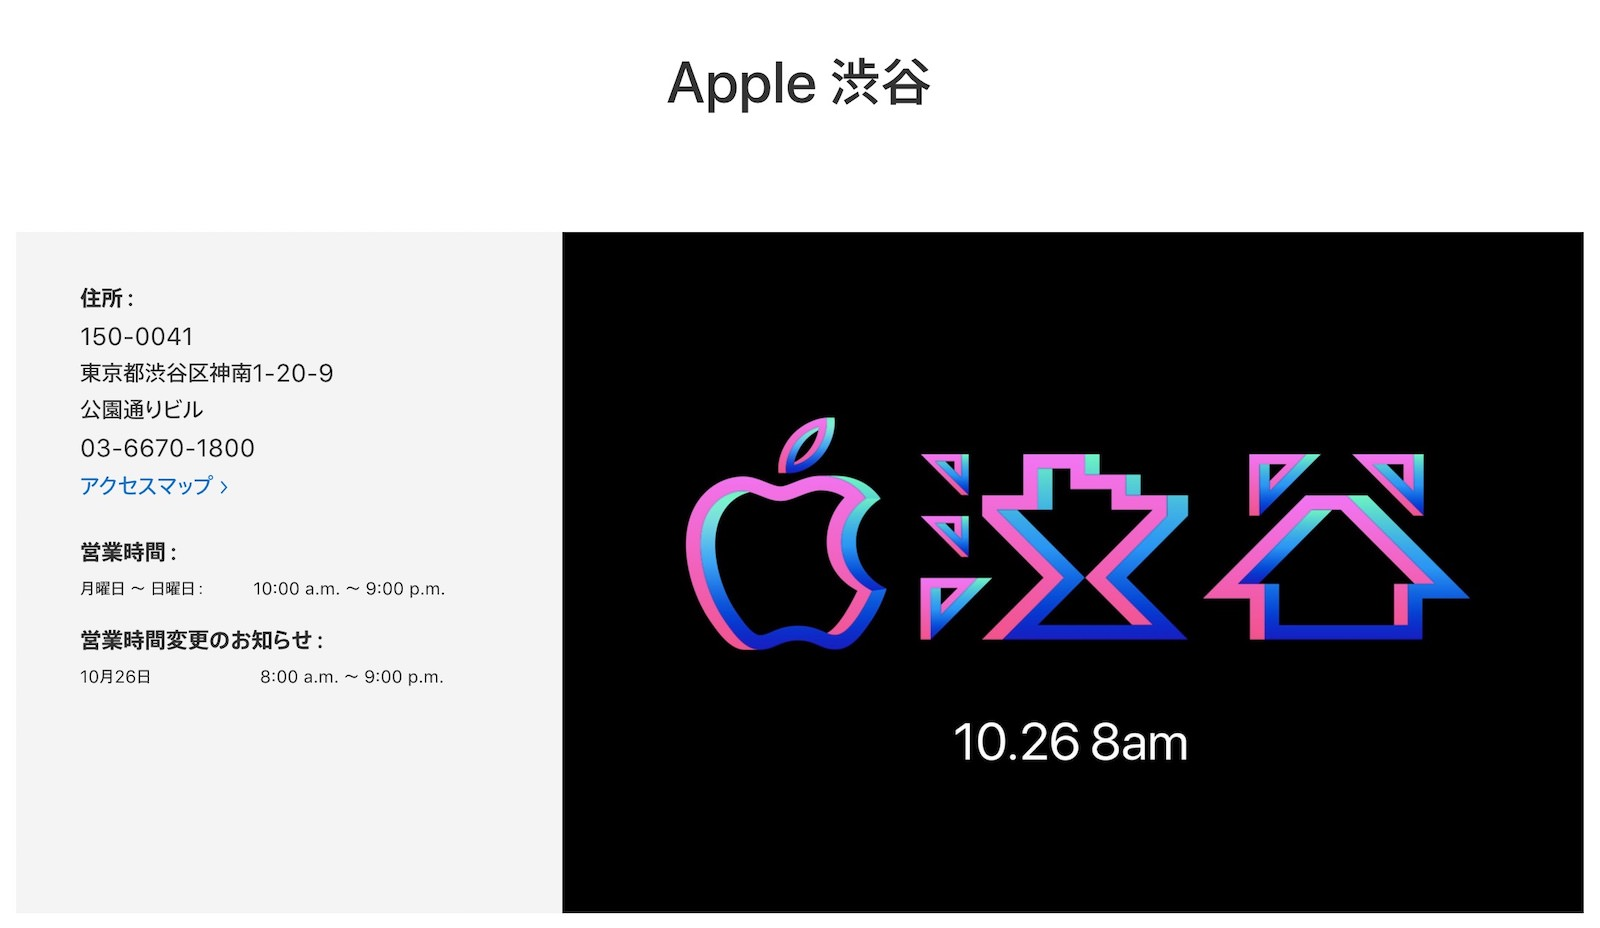 Apple Shibuya open